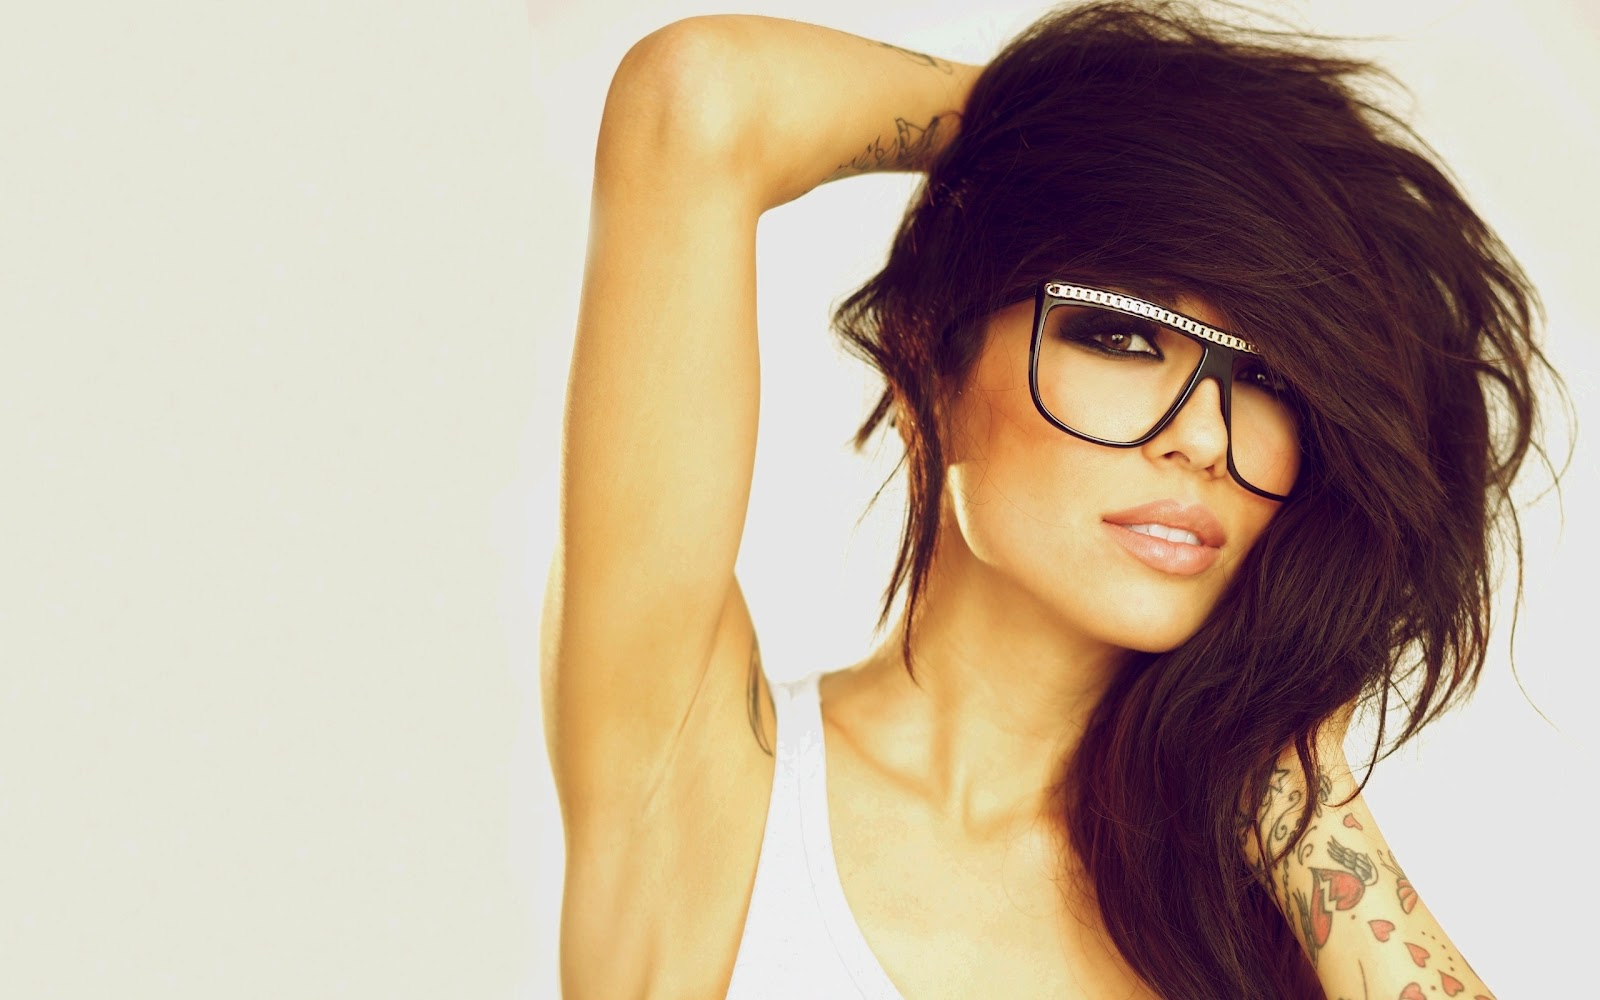 Girl Glasses Hipster Hair Style HD Wallpaper Wallpapers  Epic